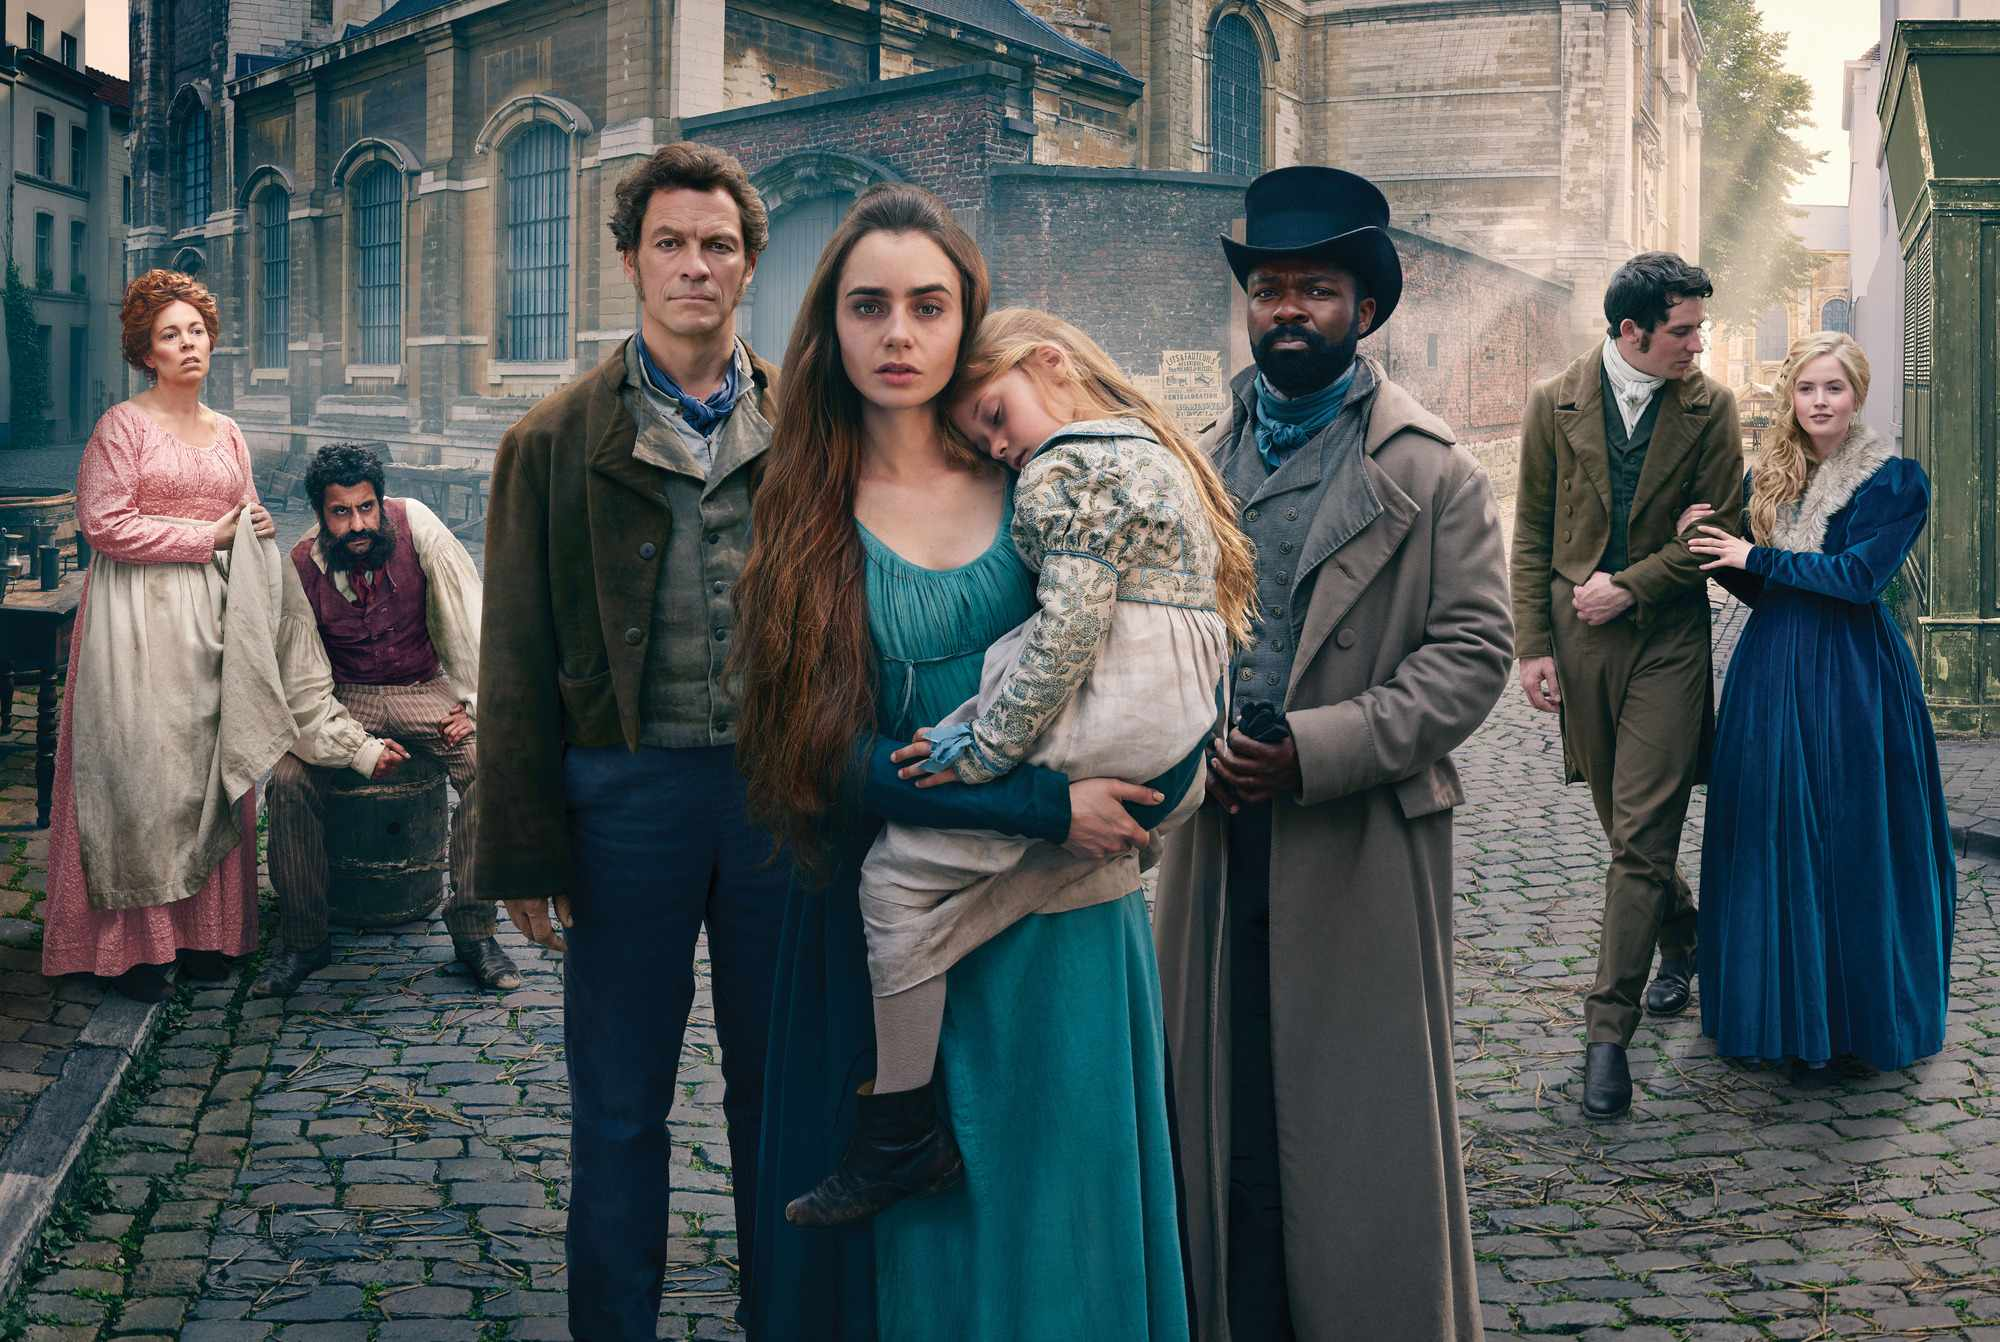 WARNING: Embargoed for publication until 00:00:01 on 11/12/2018 - Programme Name: Les Miserables - TX: n/a - Episode: Les Miserables - Generic Portraits (No. 1) - Picture Shows: **EMBARGOED FOR PUBLICATION UNTIL 00:01 HRS ON TUESDAY 11TH DECEMBER 2018** Madame Thenardier (OLIVIA COLMAN), Thenardier (ADEEL AKHTAR), Jean Valjean (DOMINIC WEST), Fantine (LILY COLLINS), Javert (DAVID OYELOWO), Marius (JOSH O'CONNOR), Cosette (ELLIE BAMBER) - (C) BBC/Lookout Point - Photographer: Mitch Jenkins